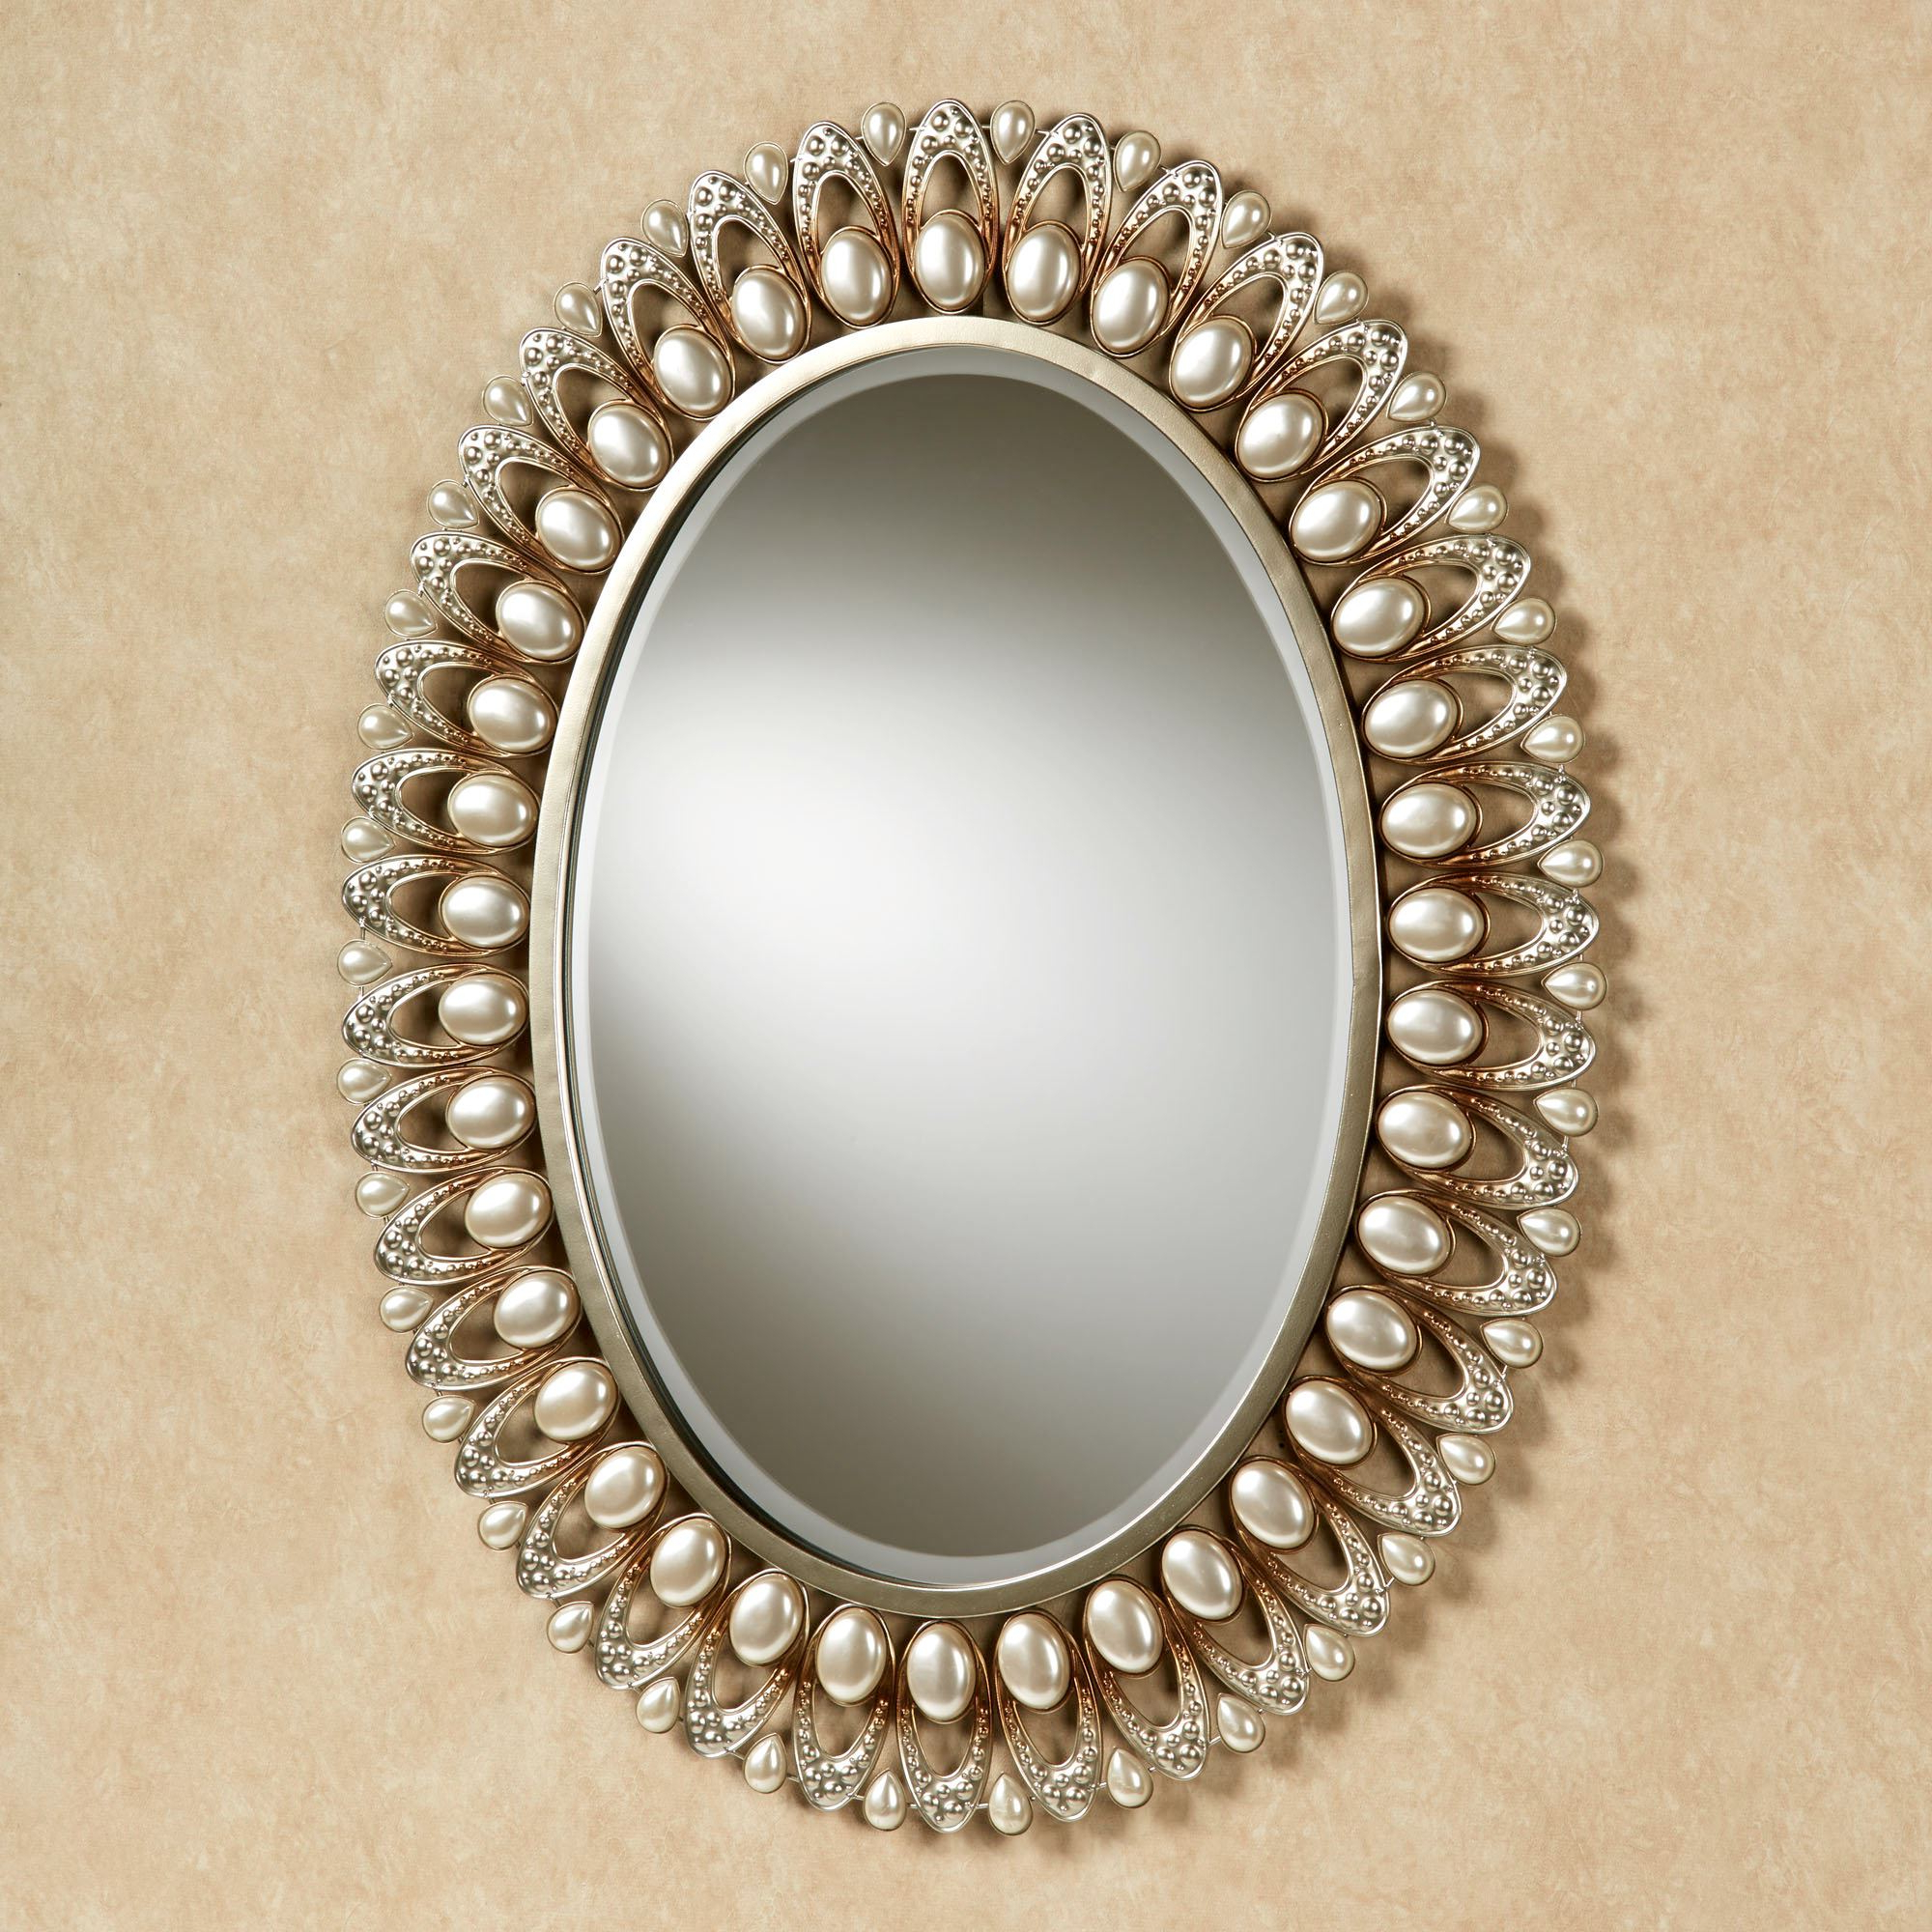 Full Length Oval Wall Mirrors Throughout Current Ausergewohnlich White Vintage Full Length Wall Mirror Set (View 14 of 20)